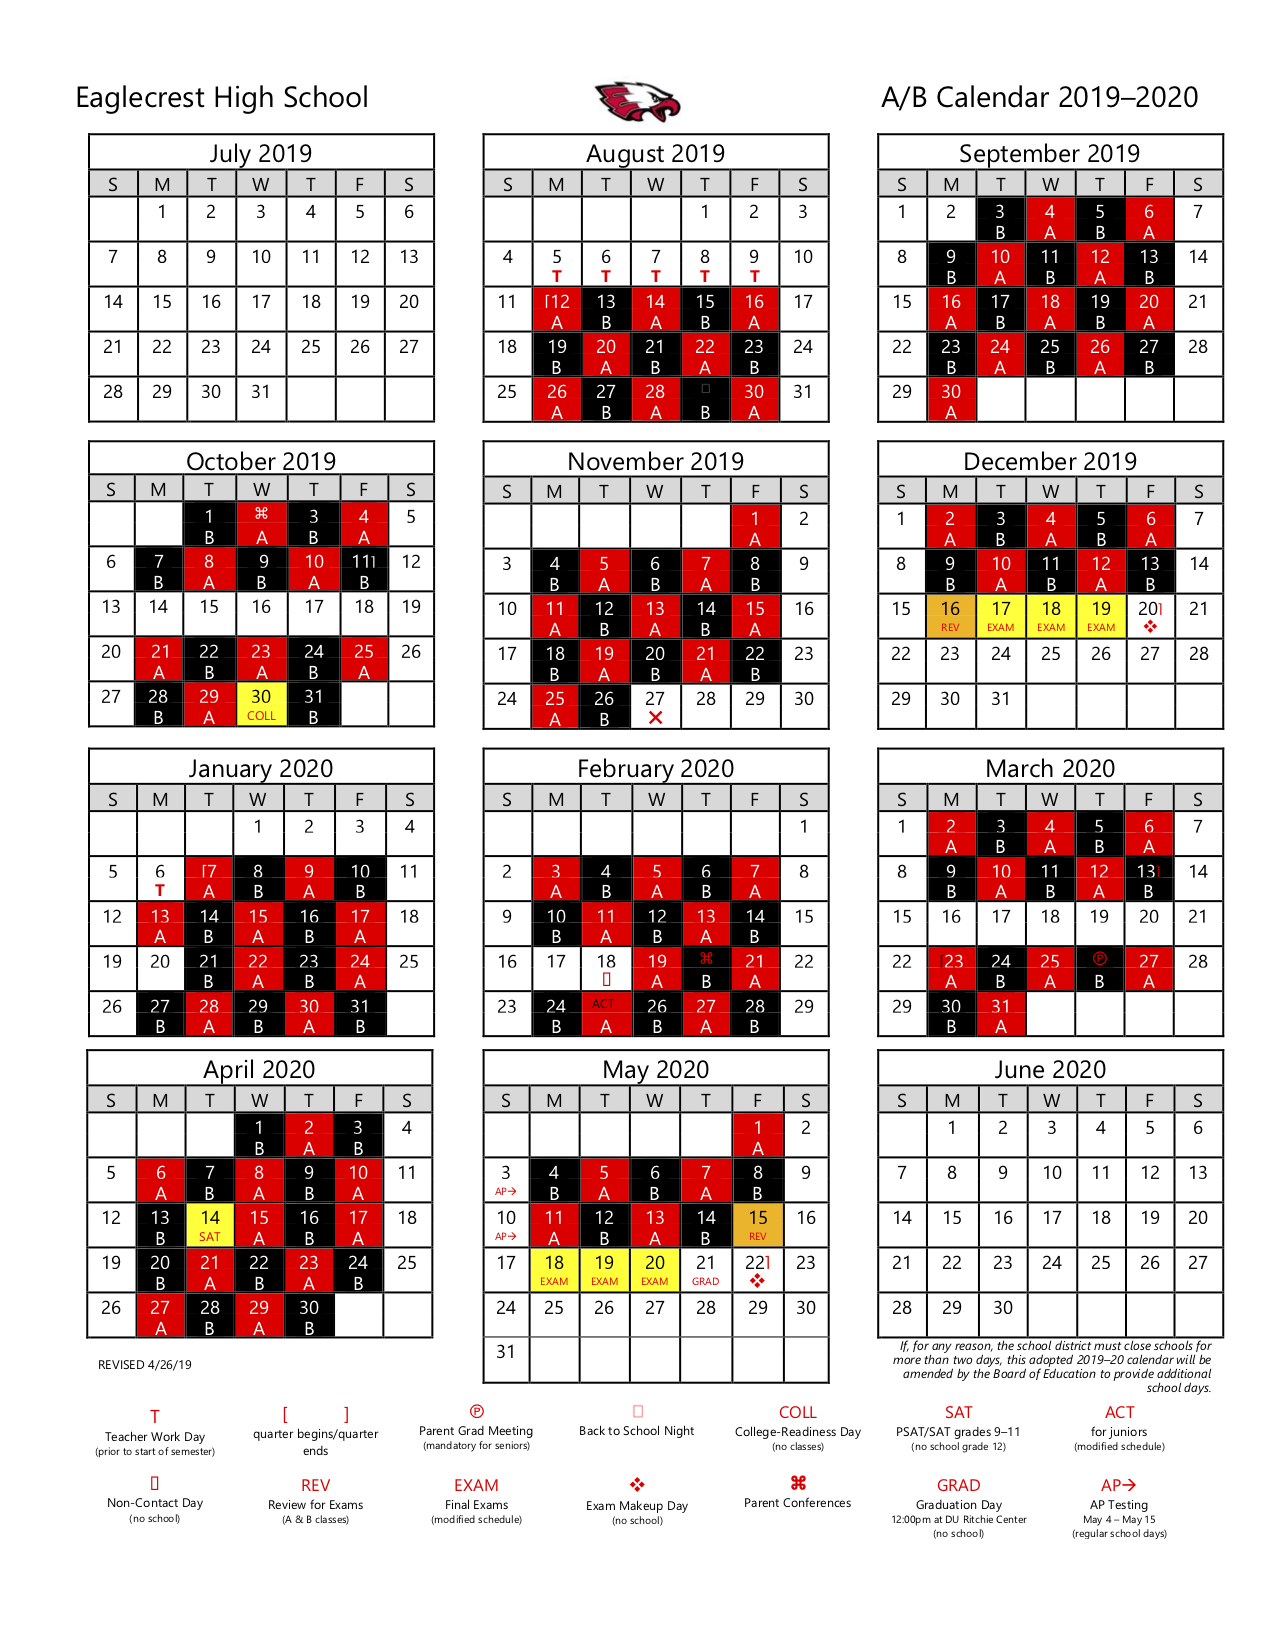 Calendars And Schedules / A/b Calendar Intended For 2021 2021 East Meadow School District Calendar